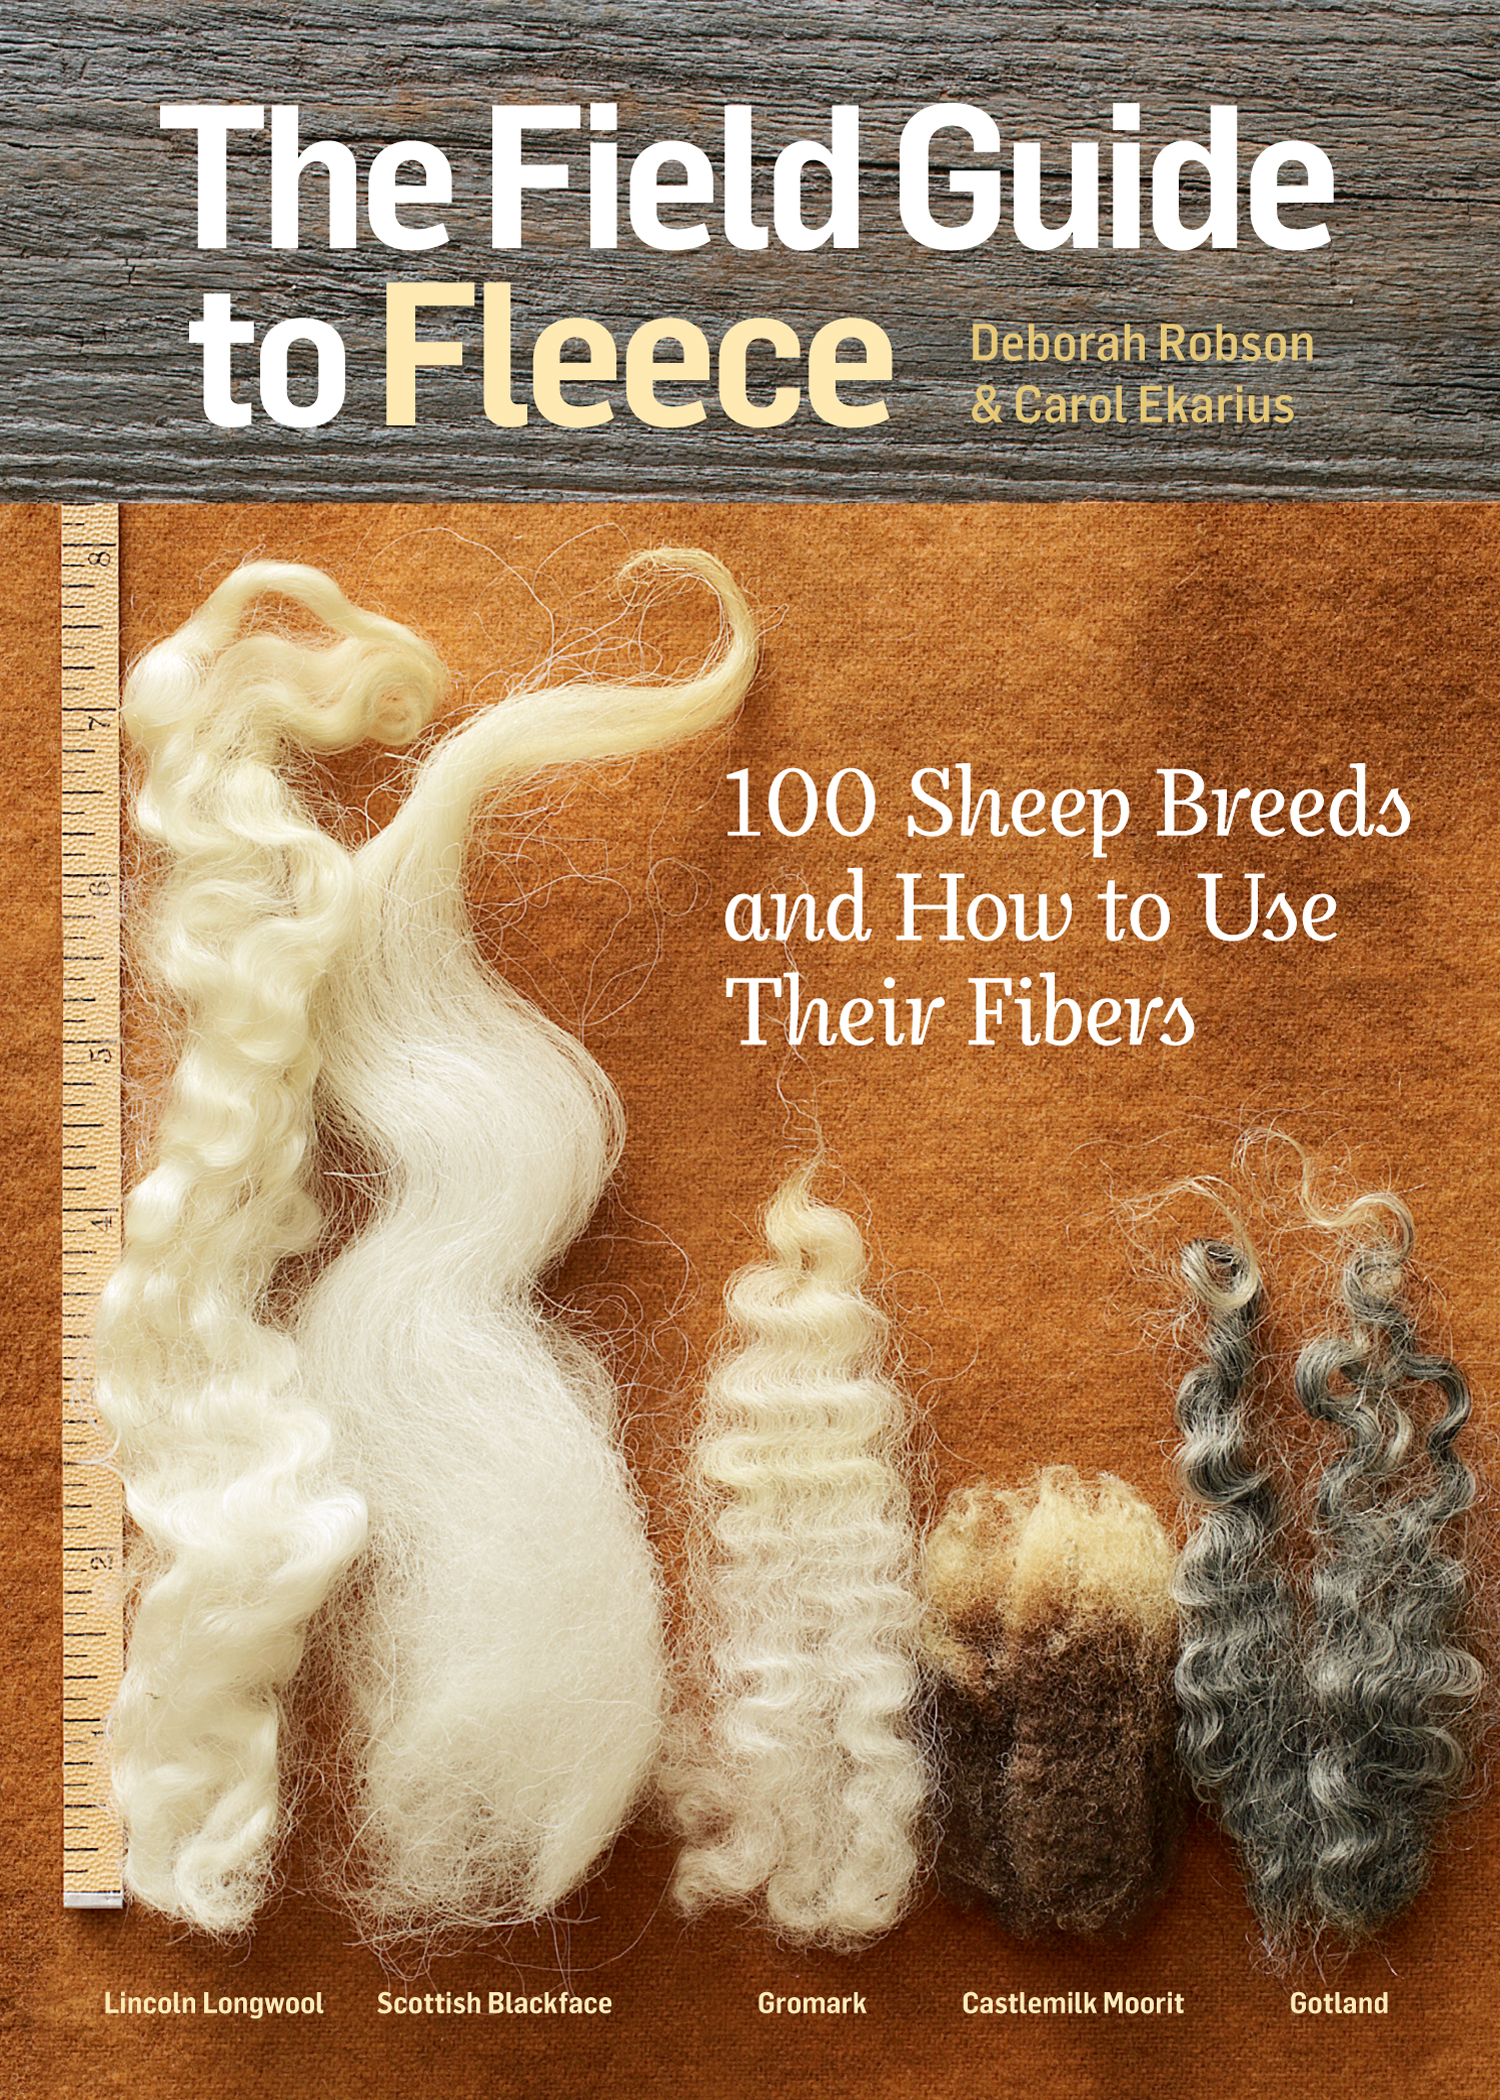 The Field Guide to Fleece 100 Sheep Breeds & How to Use Their Fibers - Carol Ekarius